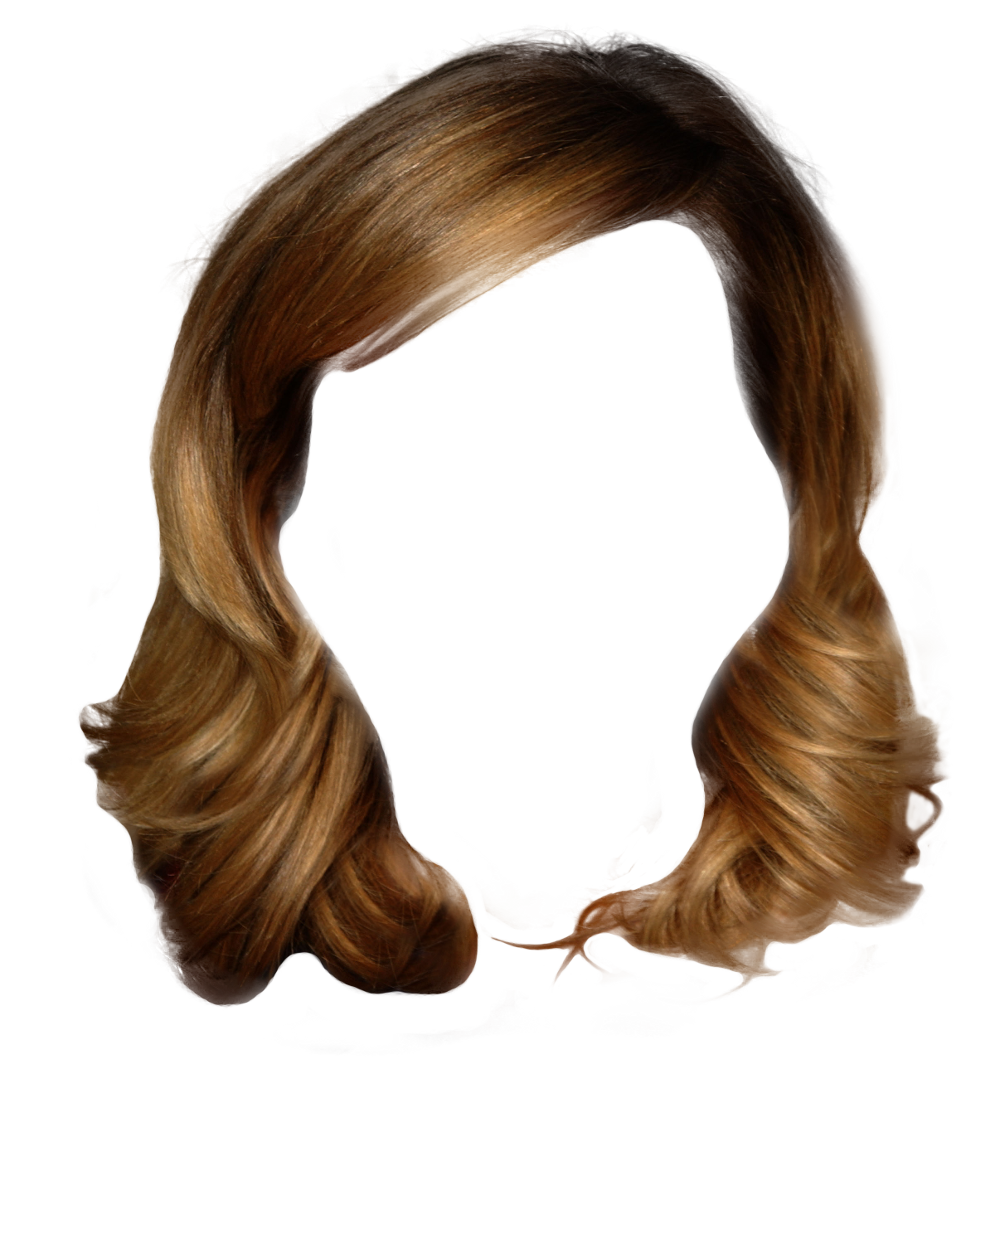 Download Hairstyles High Quality Png Hq Png Image Freepngimg